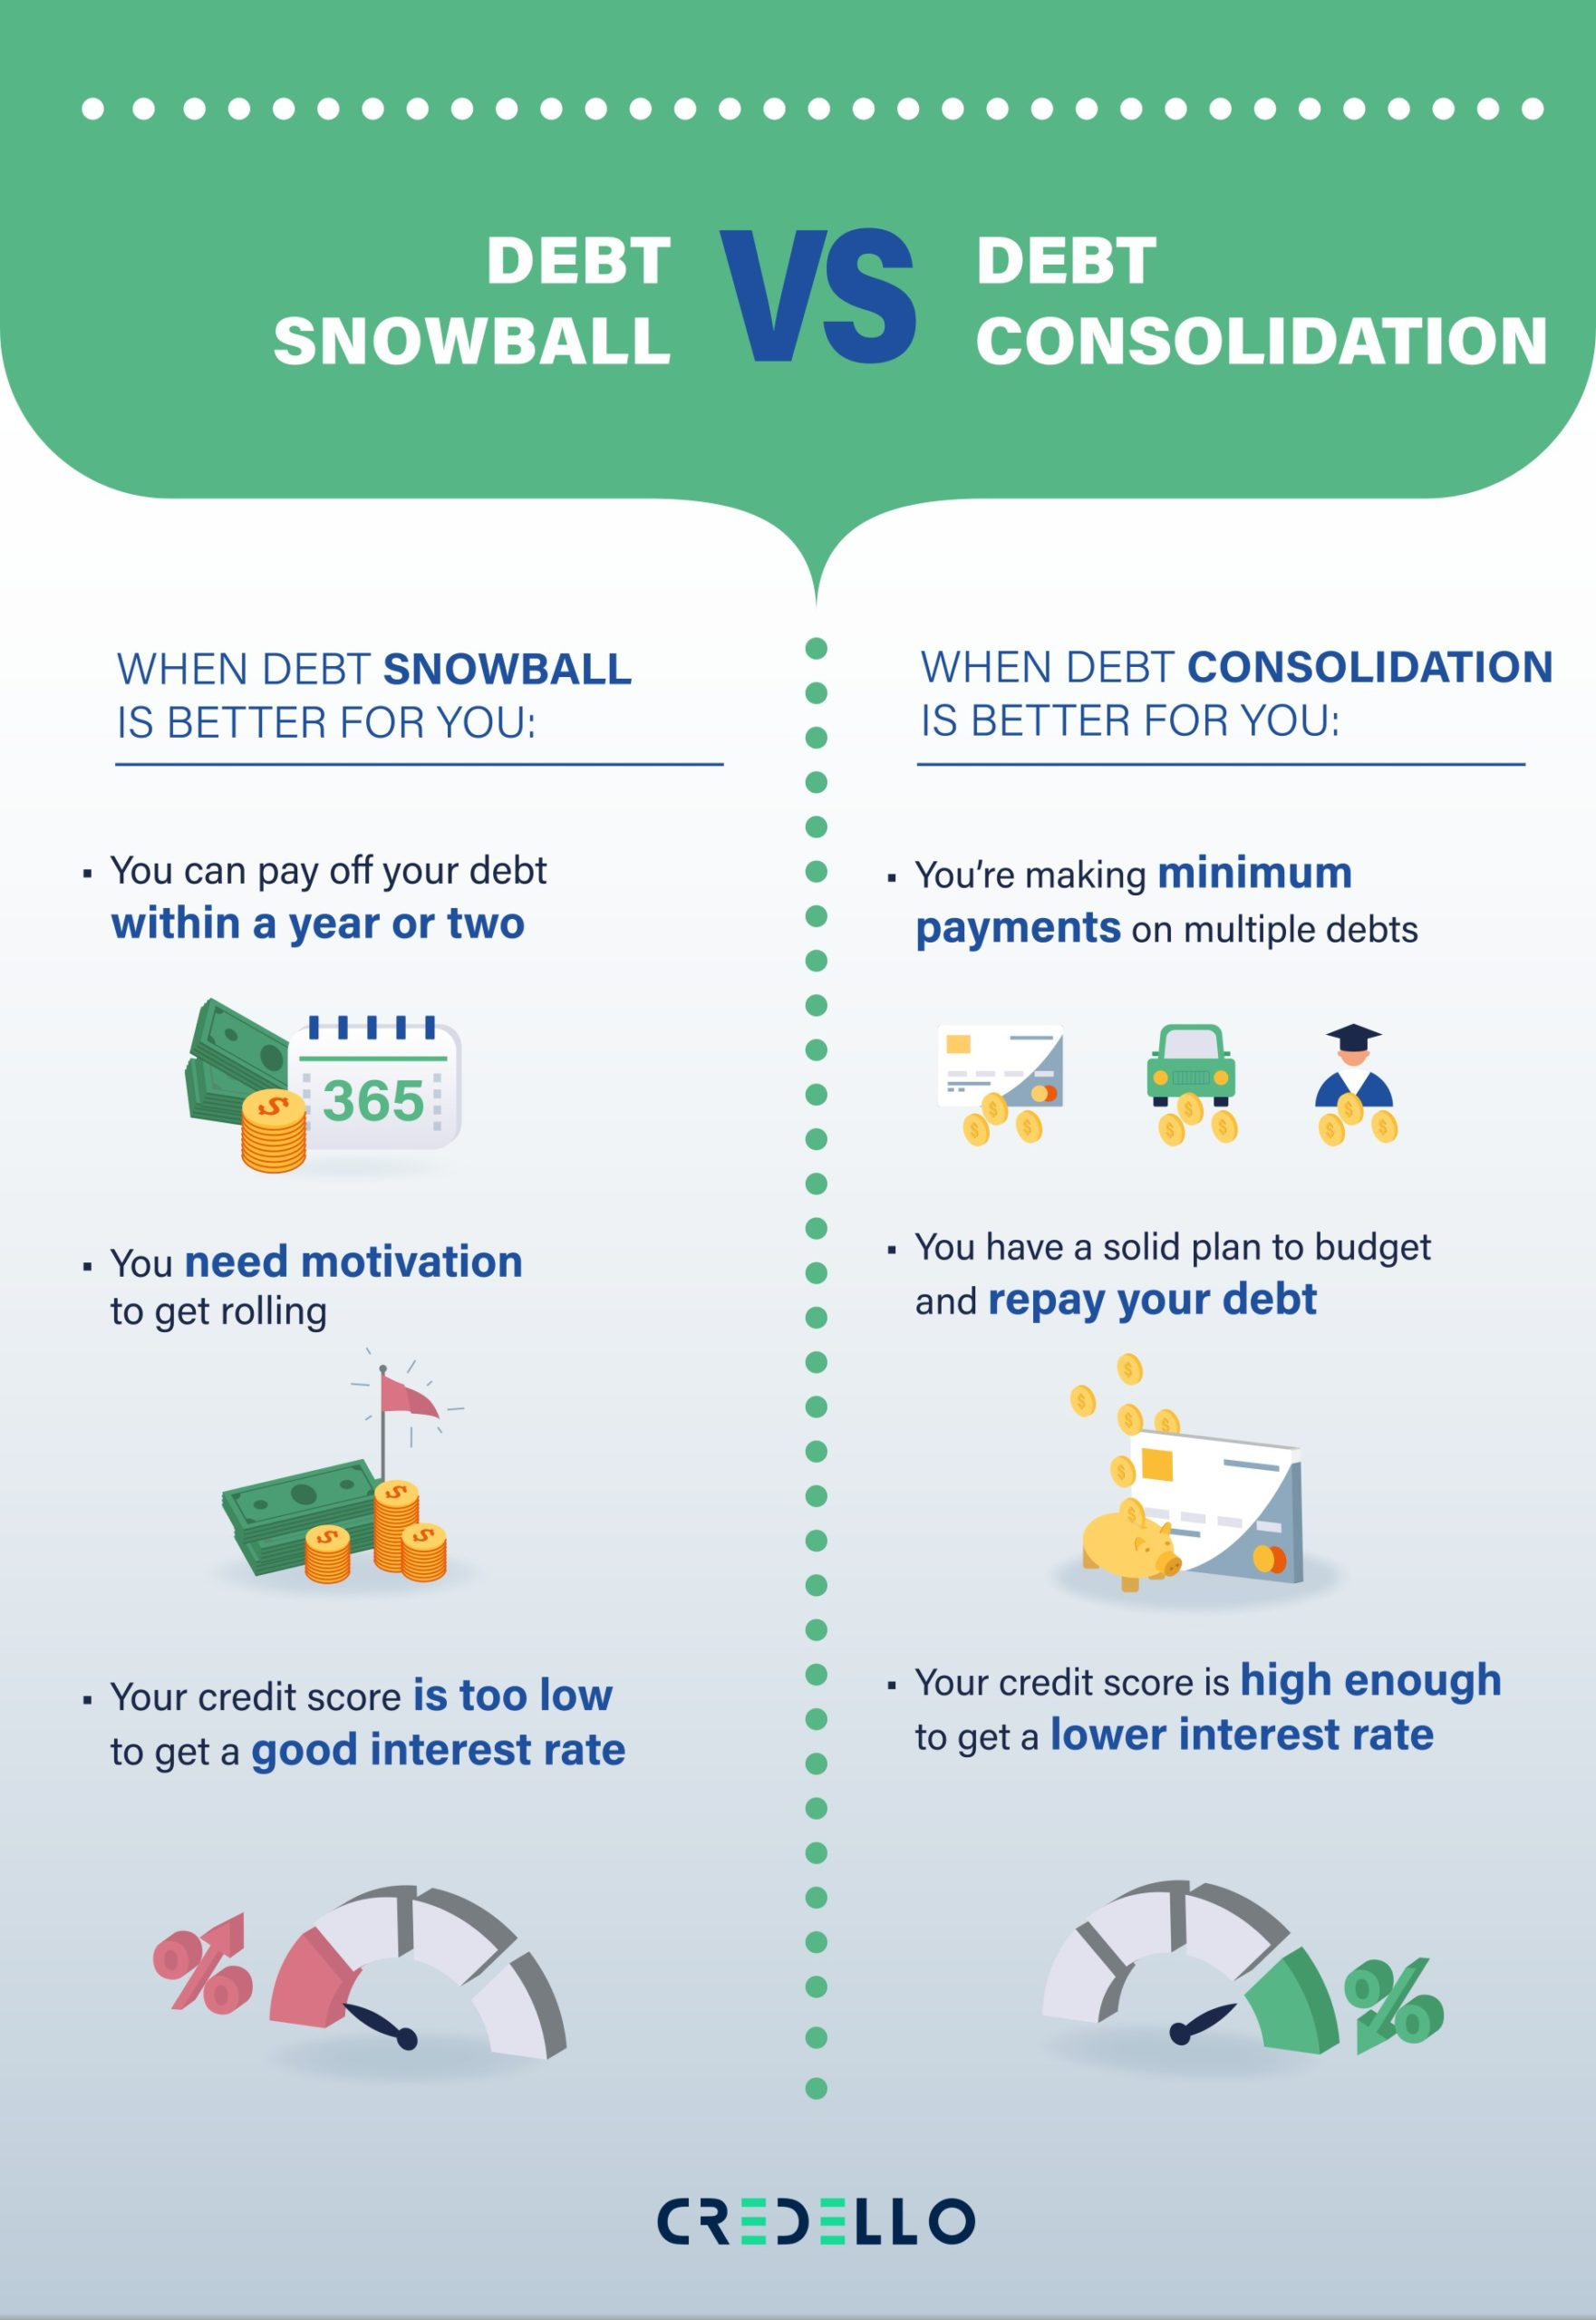 Which is best fit for your financial needs? debt snowball or debt consolidation